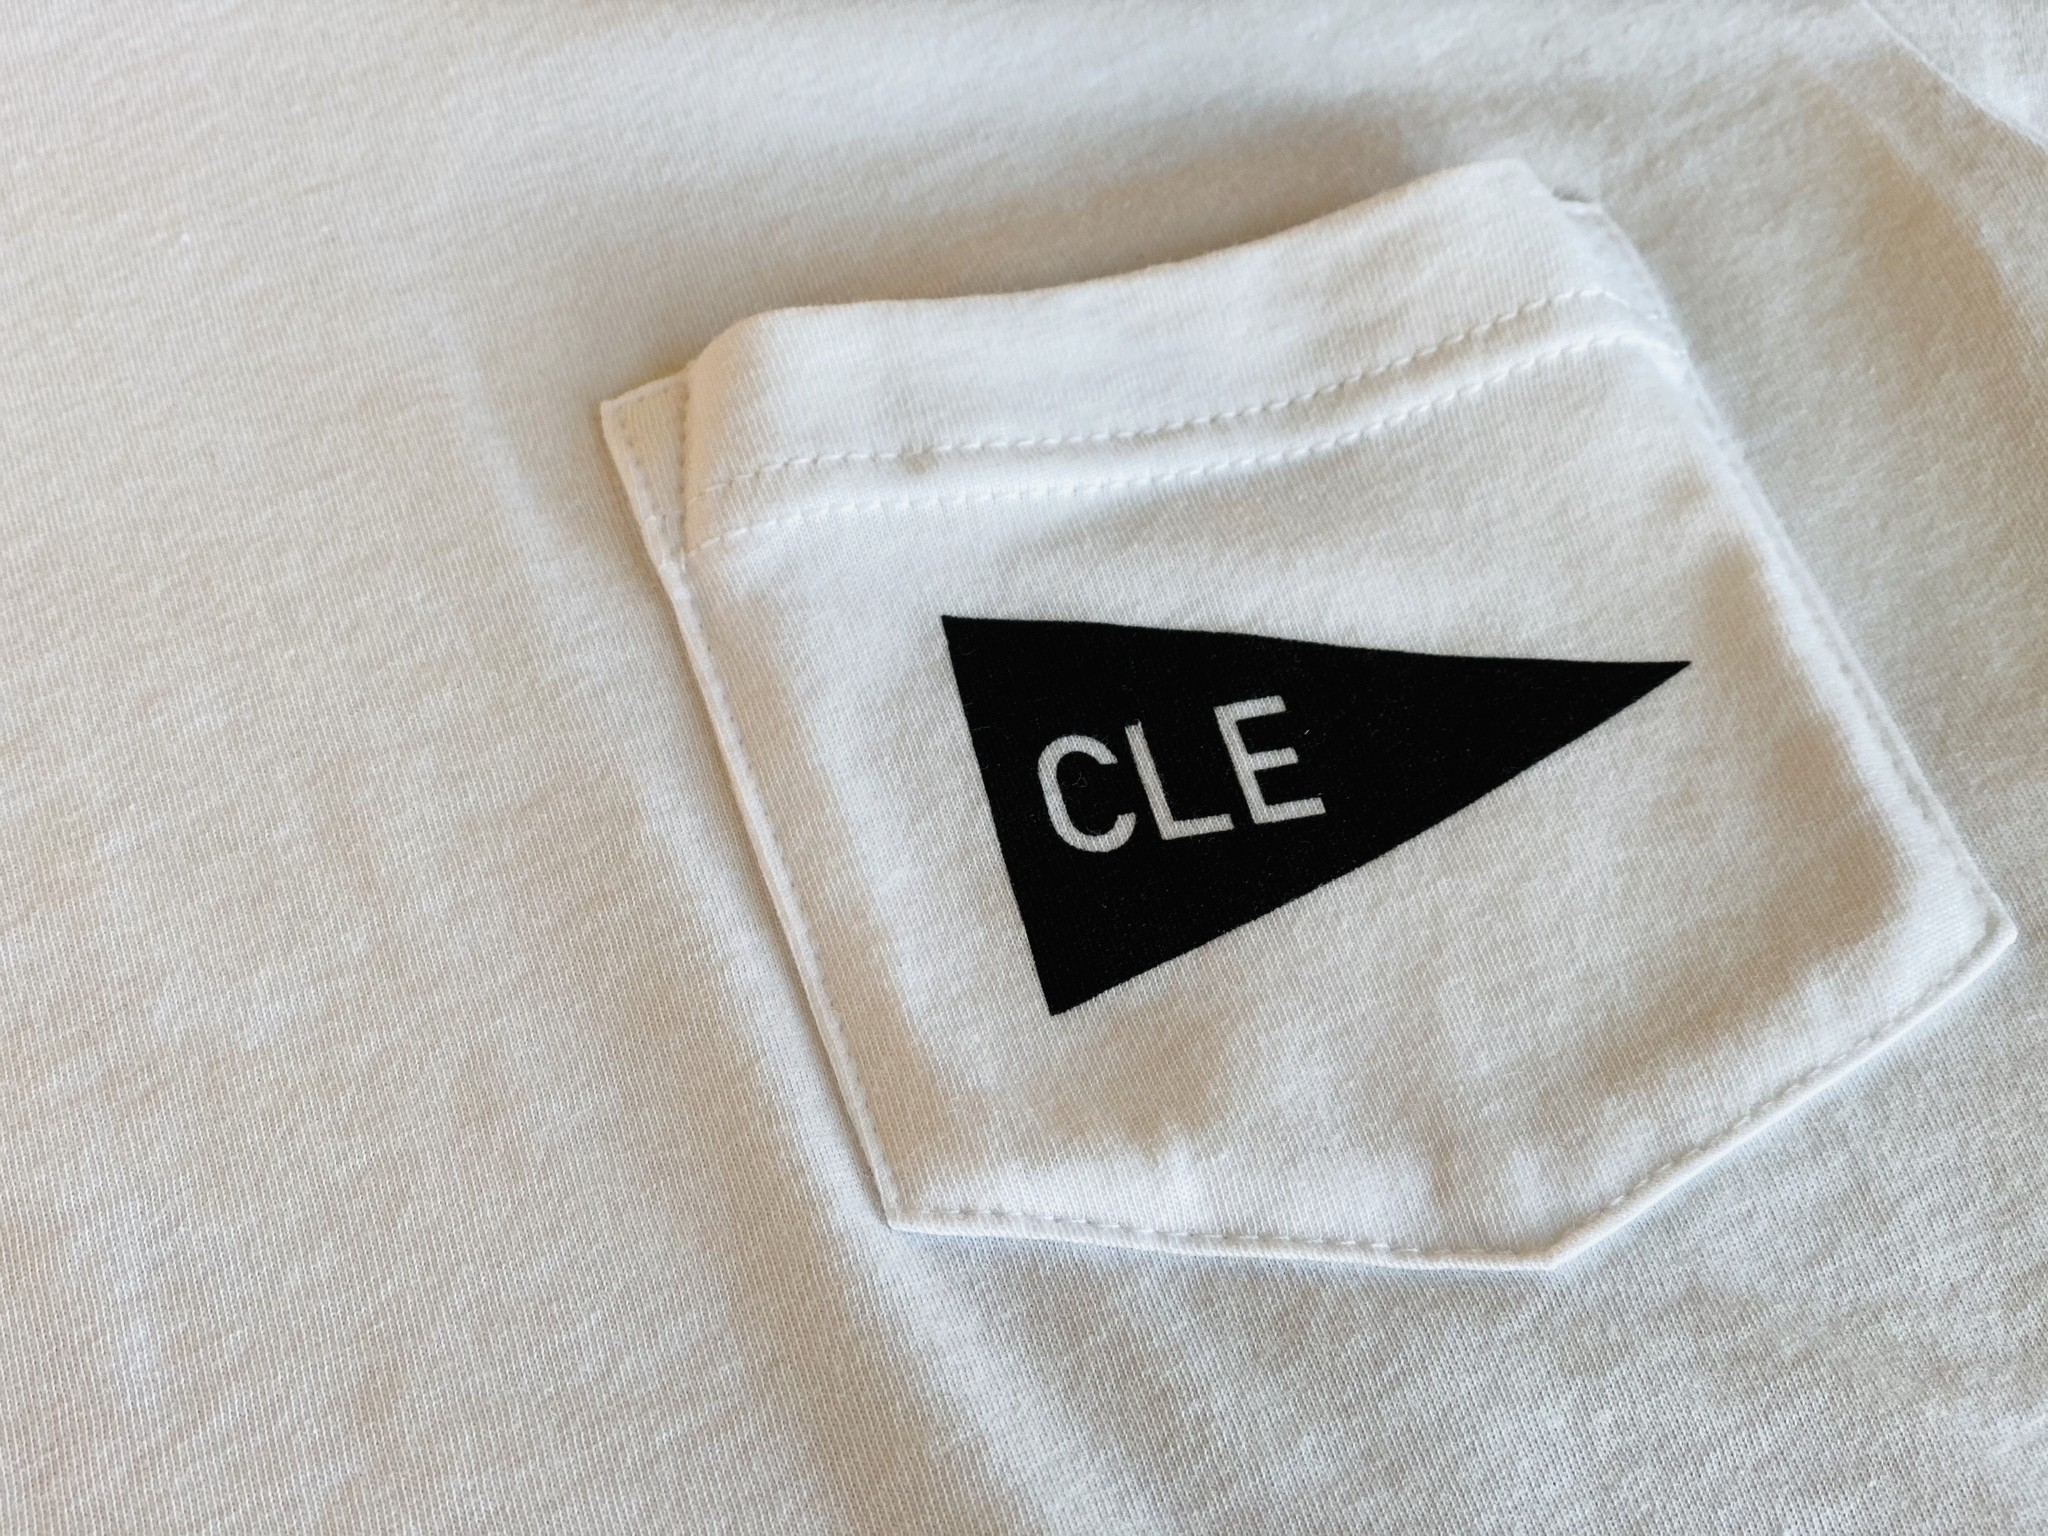 CLE Pennant T-Shirt (by emilyroggenburk)